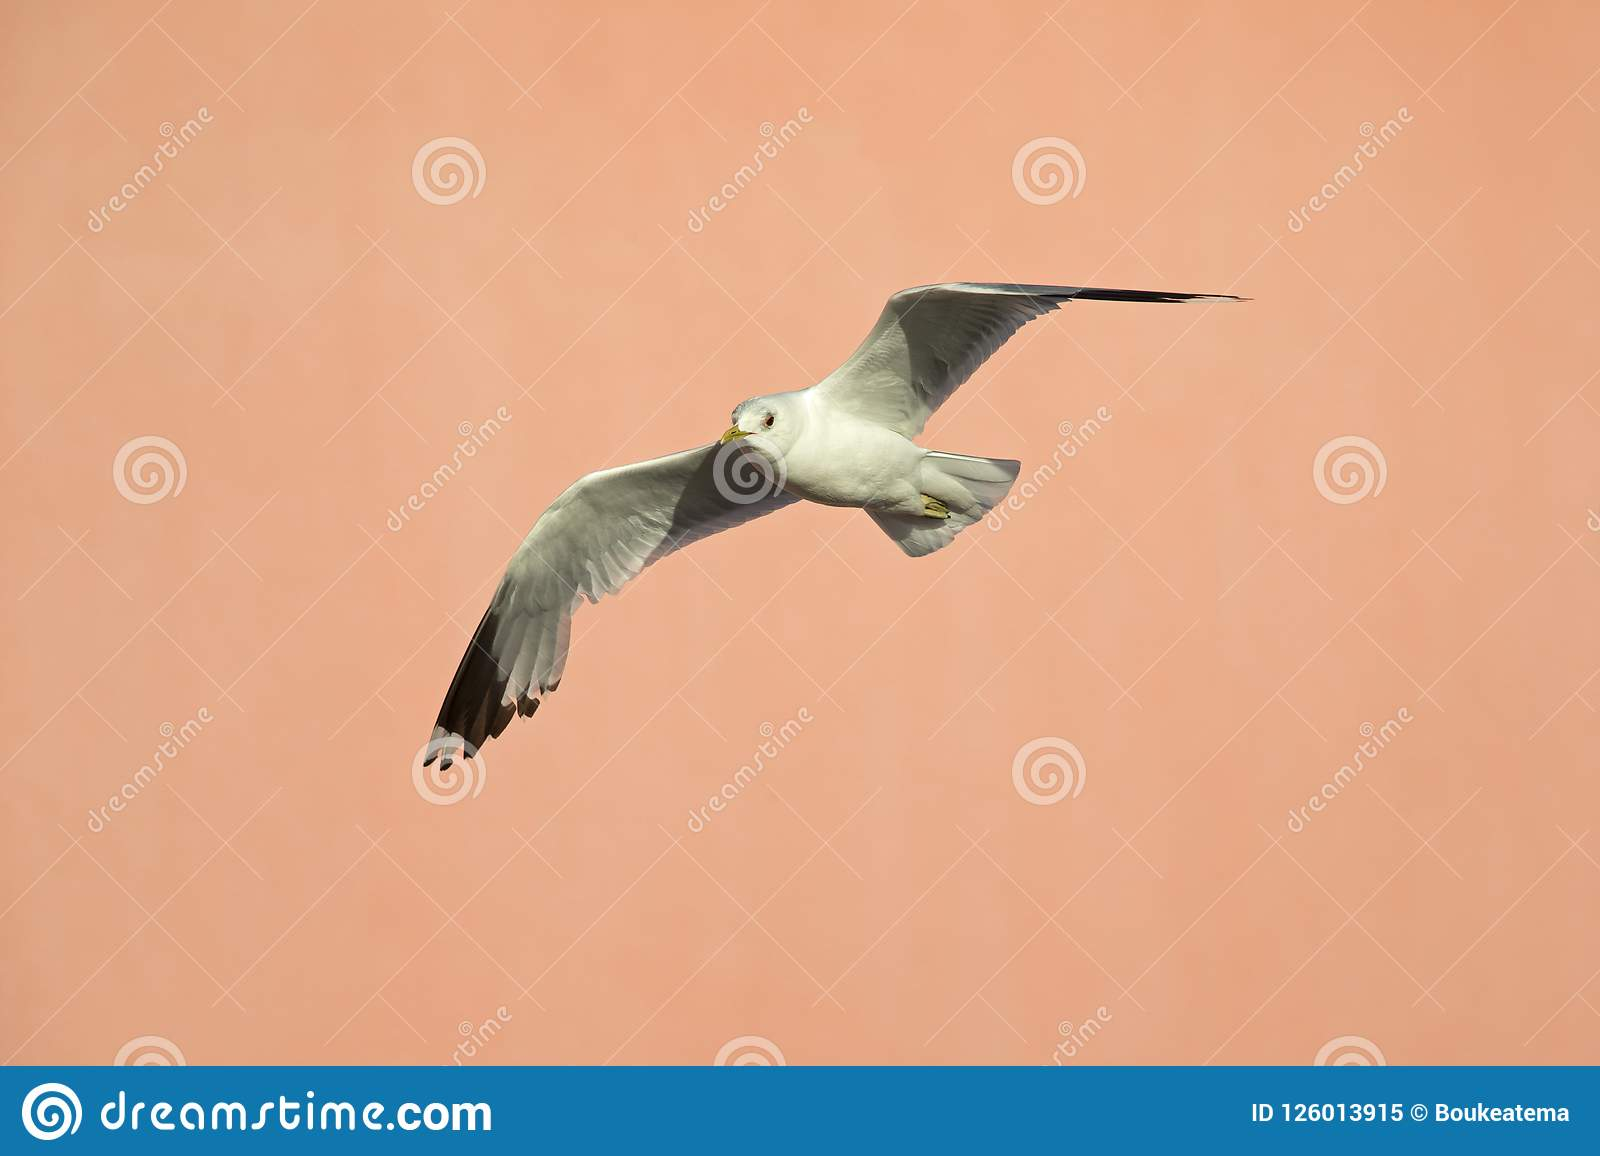 A common gull Larus canus flying infront of a pink building in the ports of Bremen Germany.